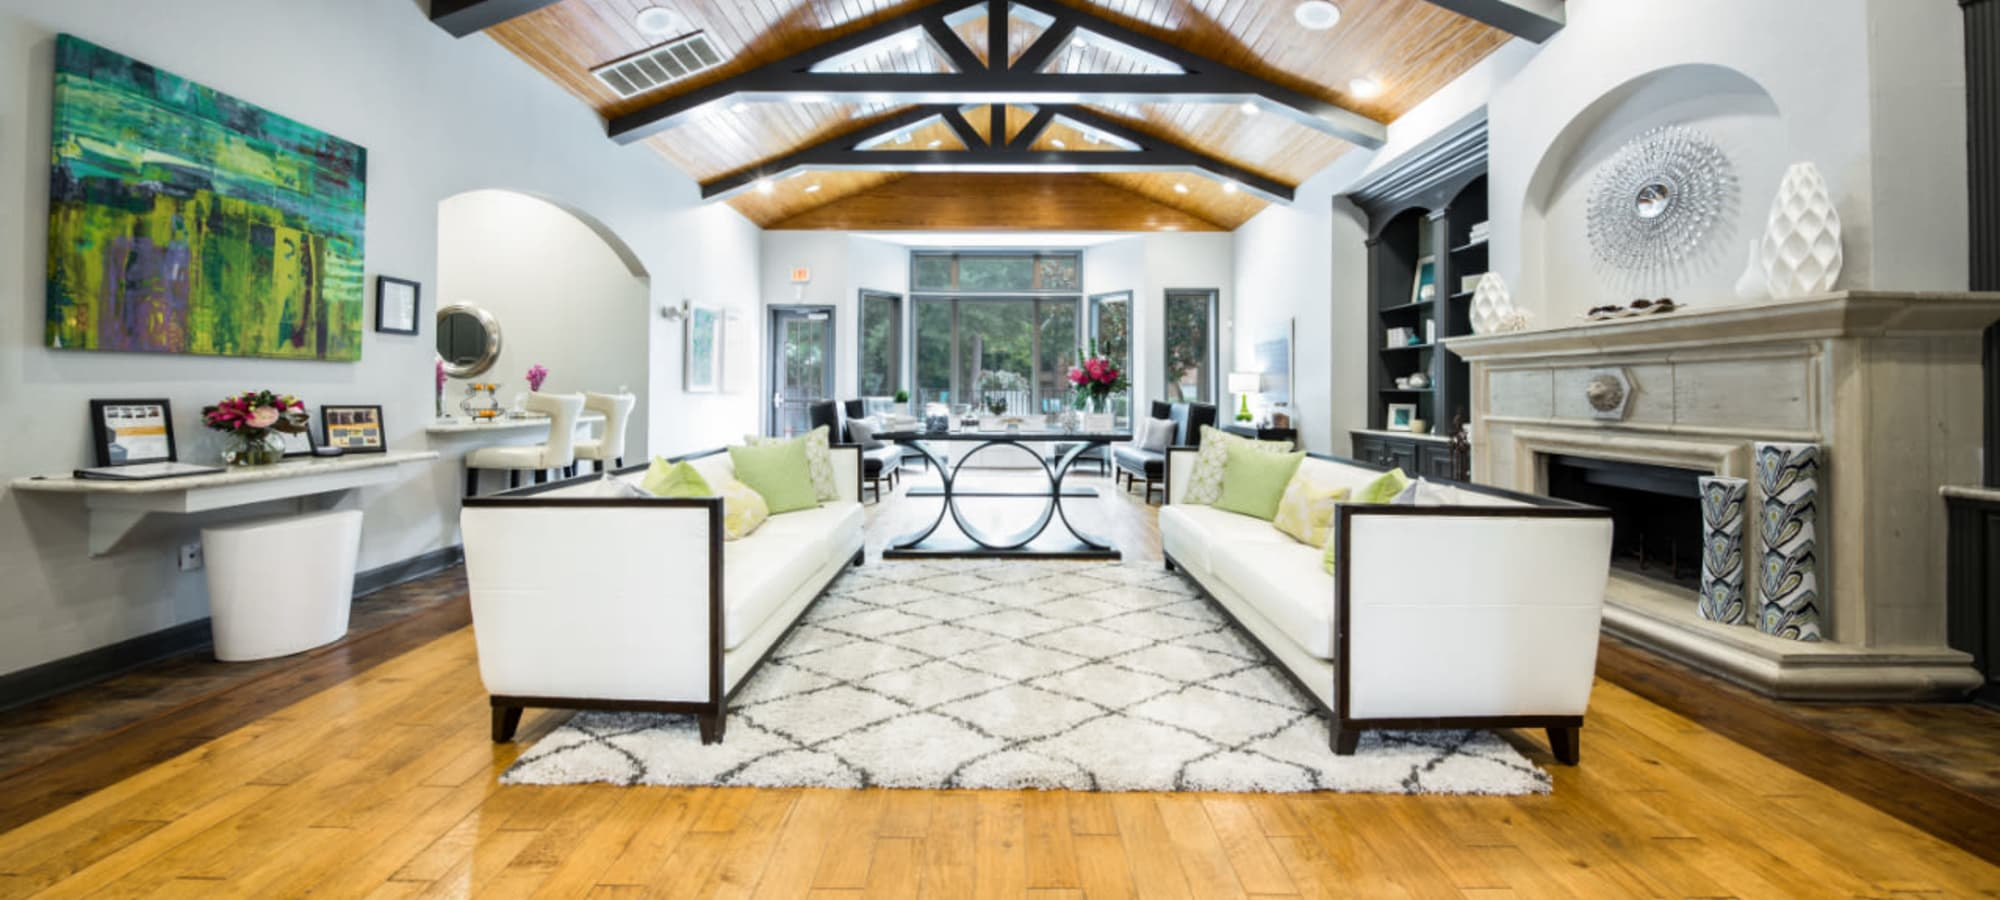 Apply to live at Marquis at Kingwood in Kingwood, Texas